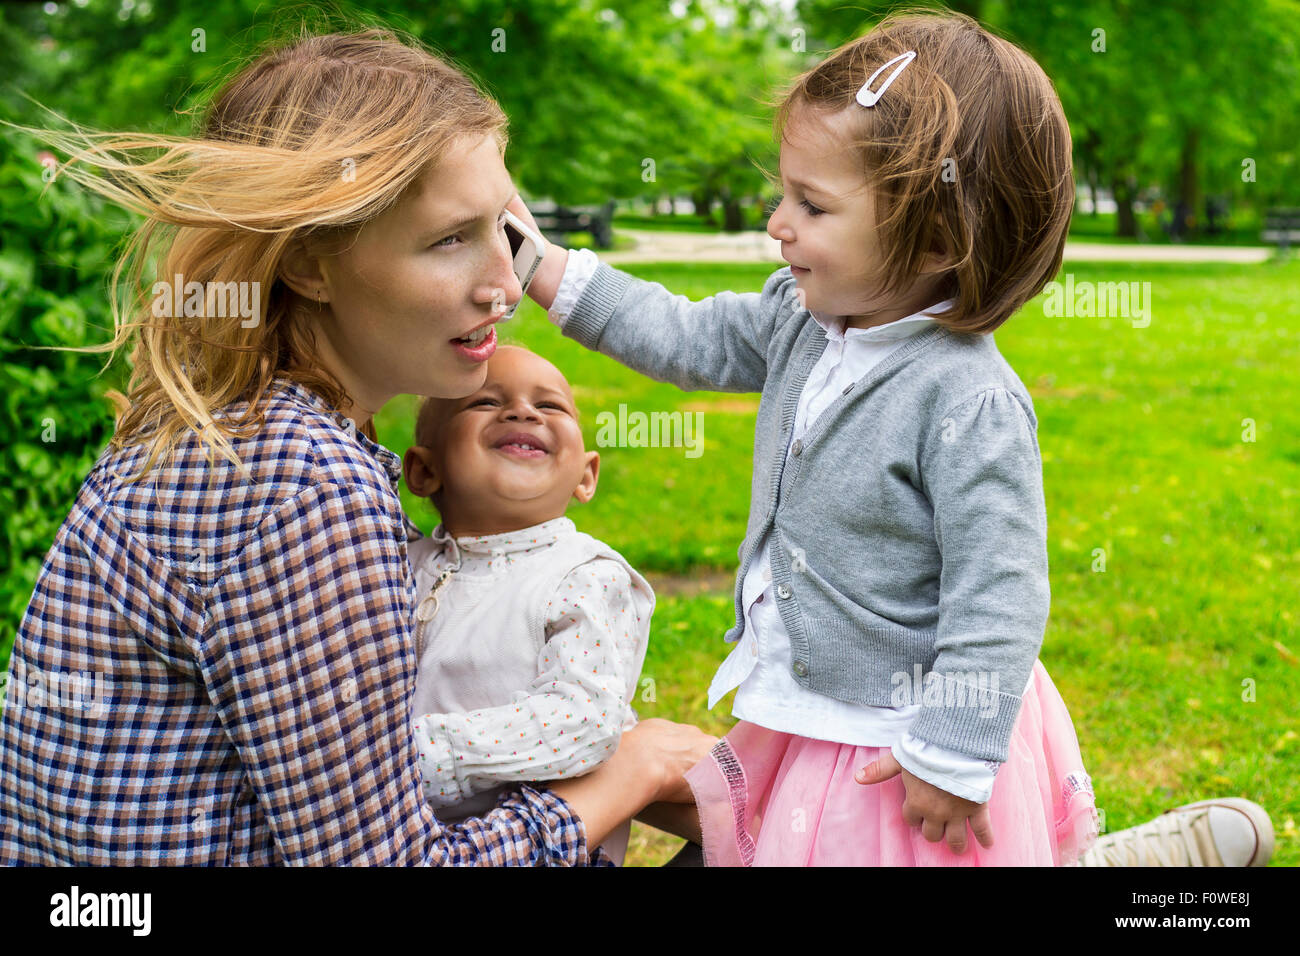 Cute toddler holding a smartphone to mother's ear - Stock Image